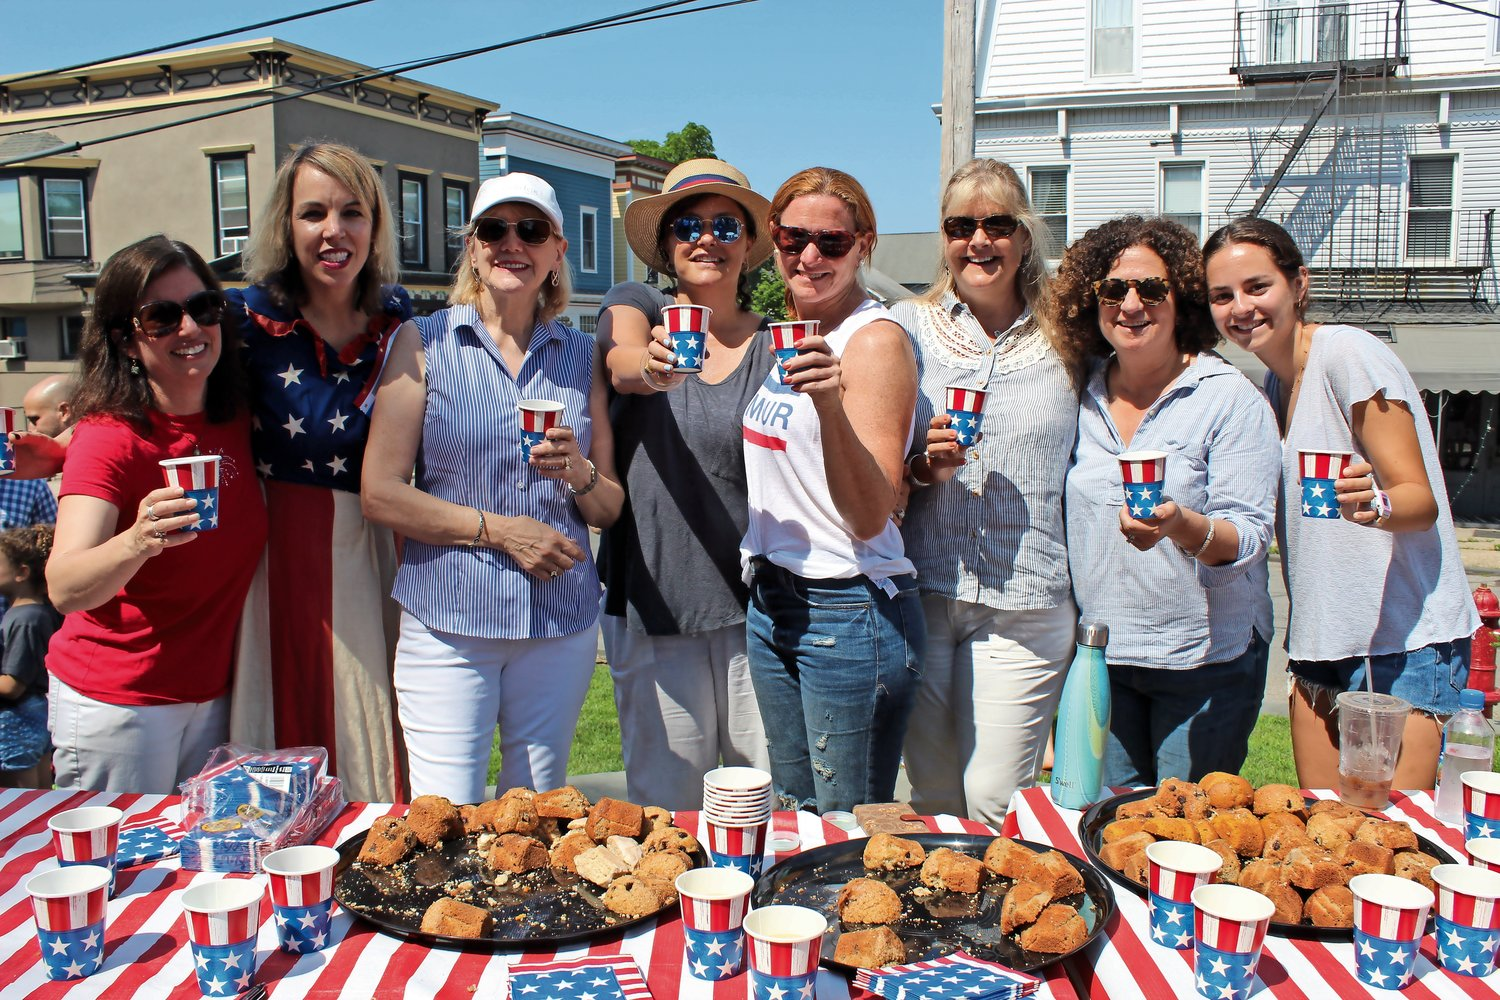 Members of the Sea Cliff Civic Association doled out muffins, tea and lemonade to hungry guests.